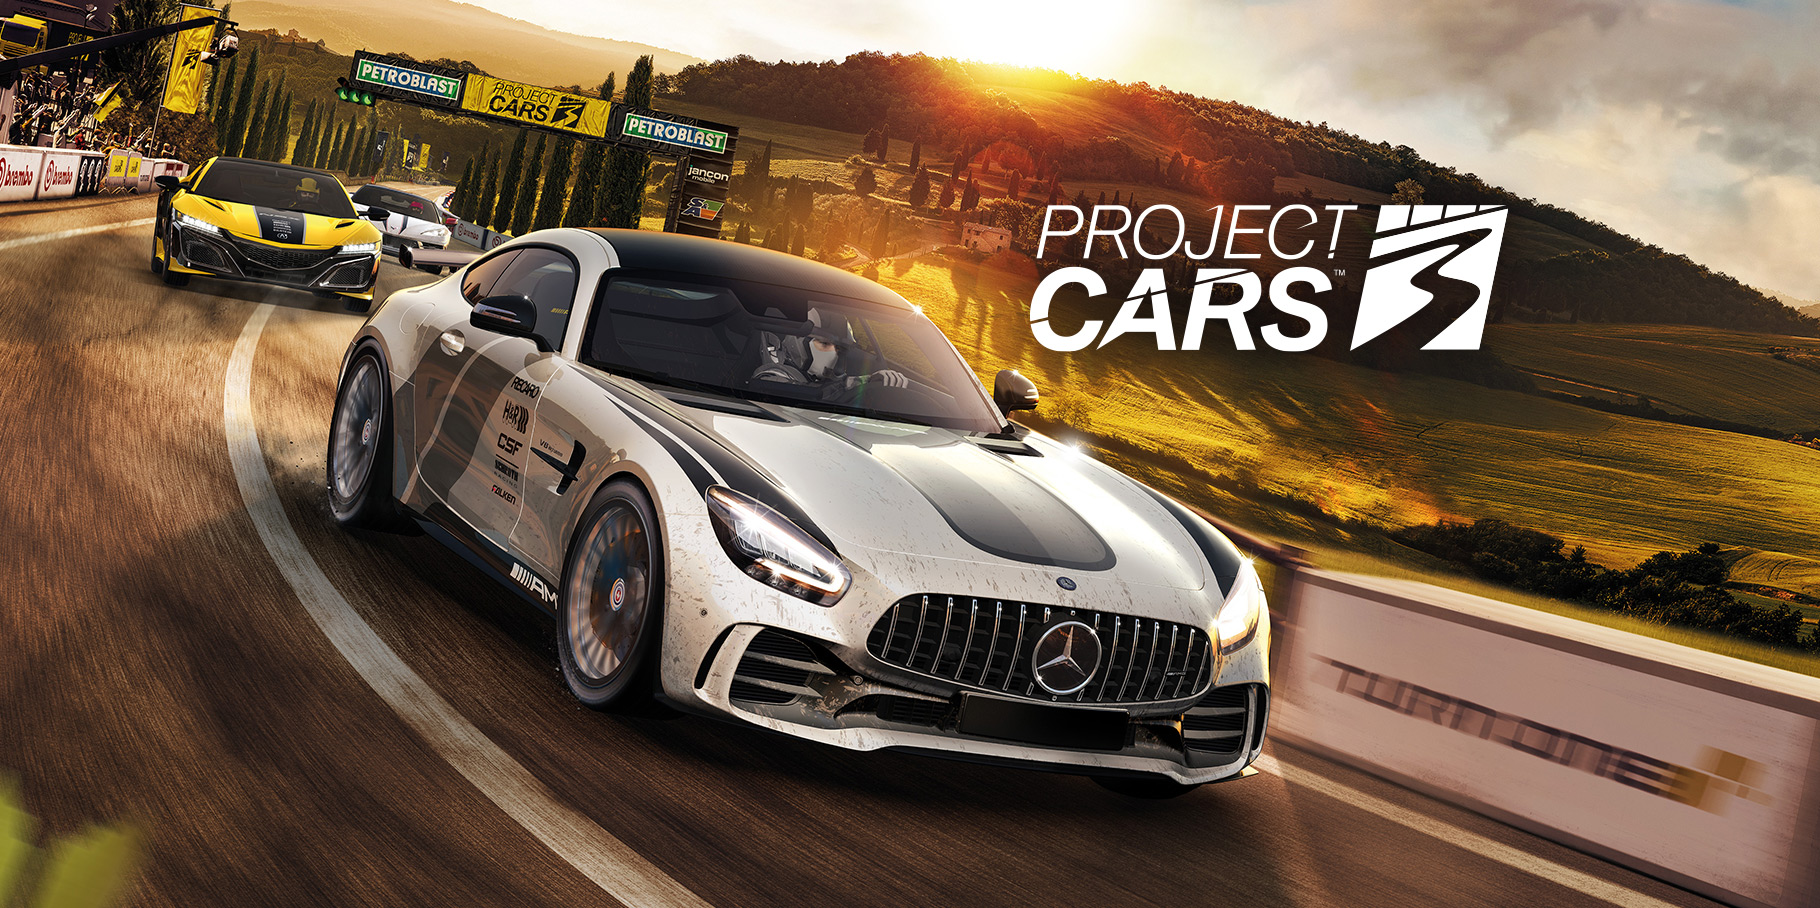 Artwork for Project Cars 3